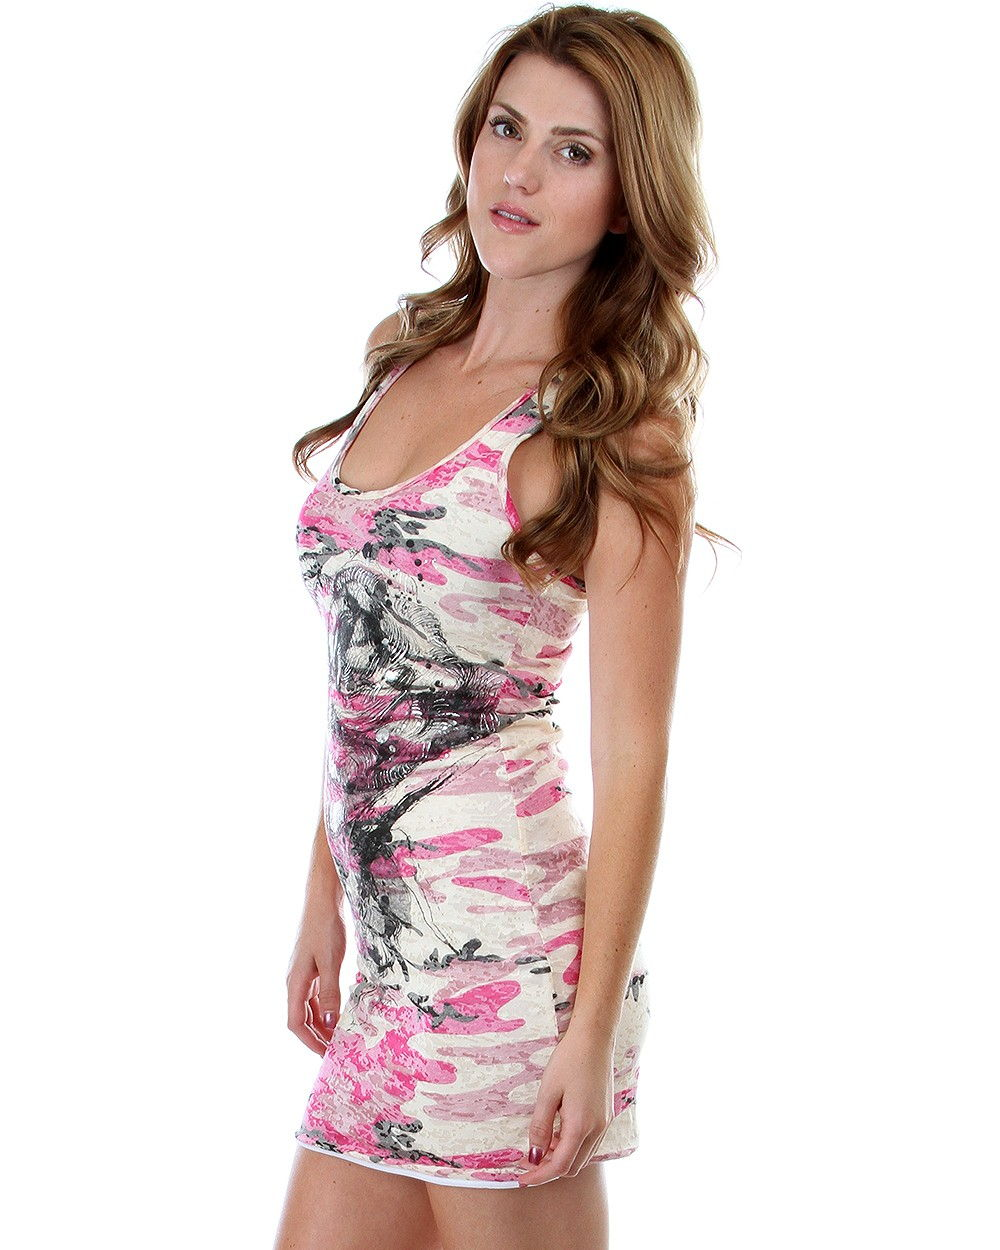 Pink Camo Dresses Images Galleries